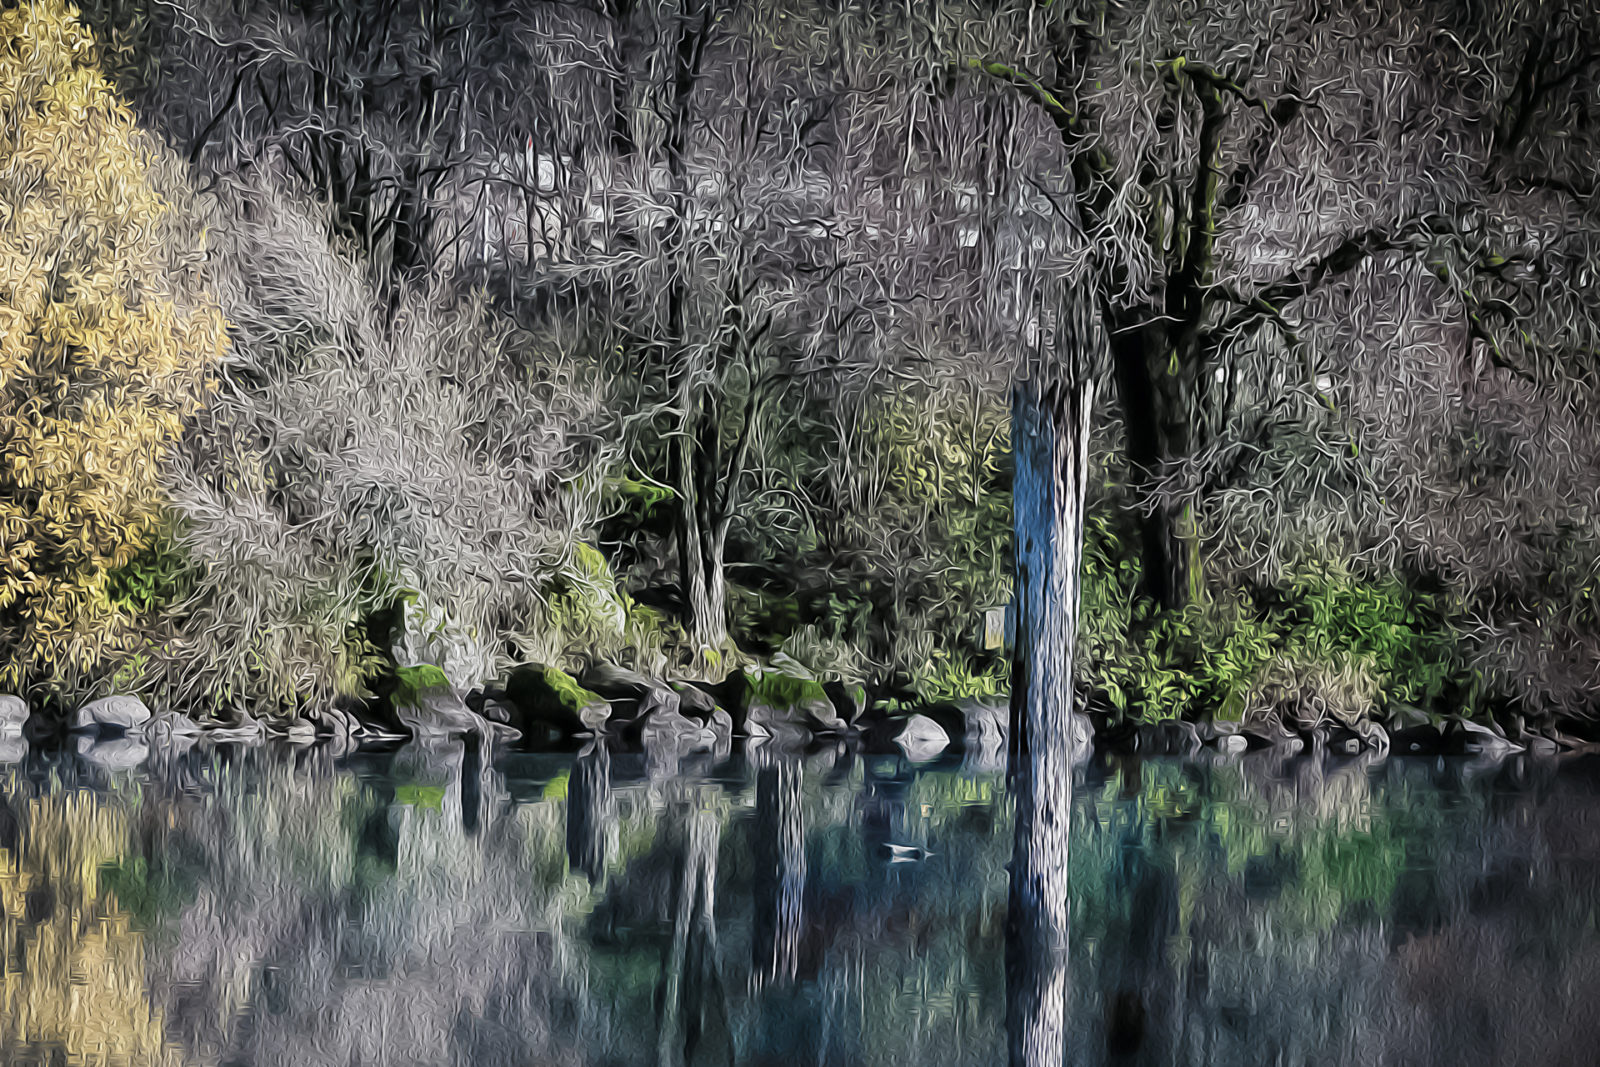 The Wicked Pond